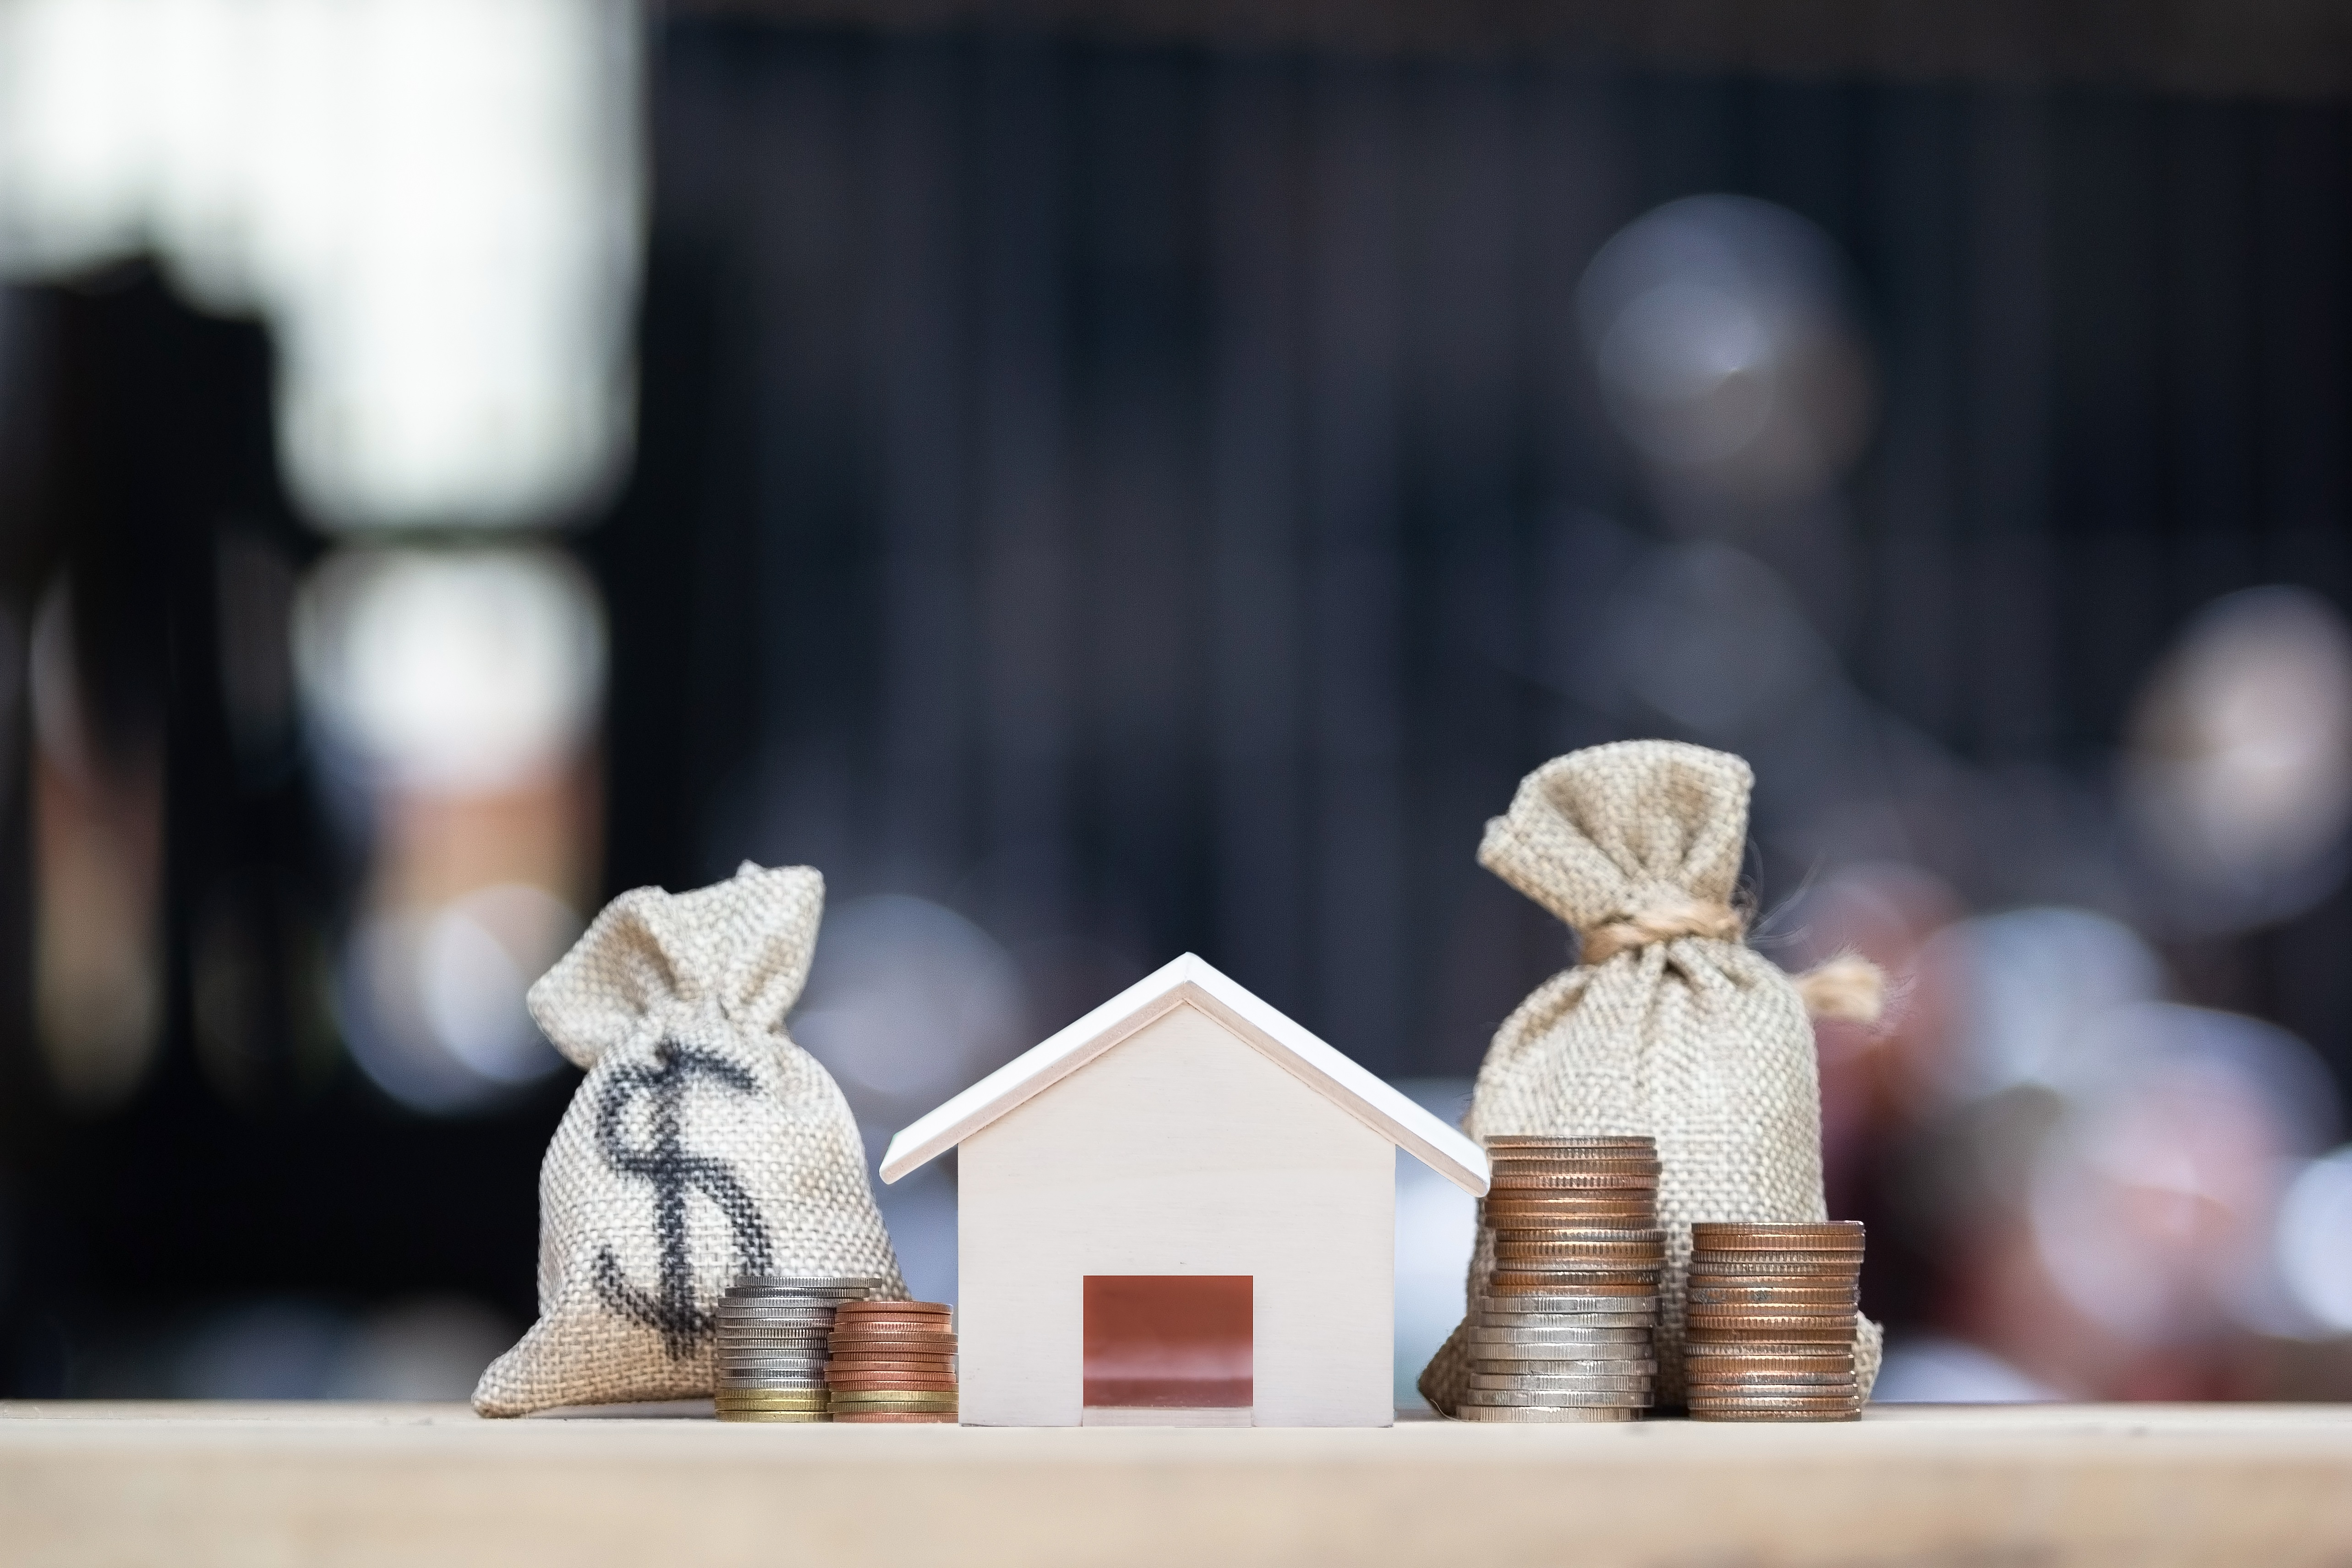 house with money representing grants